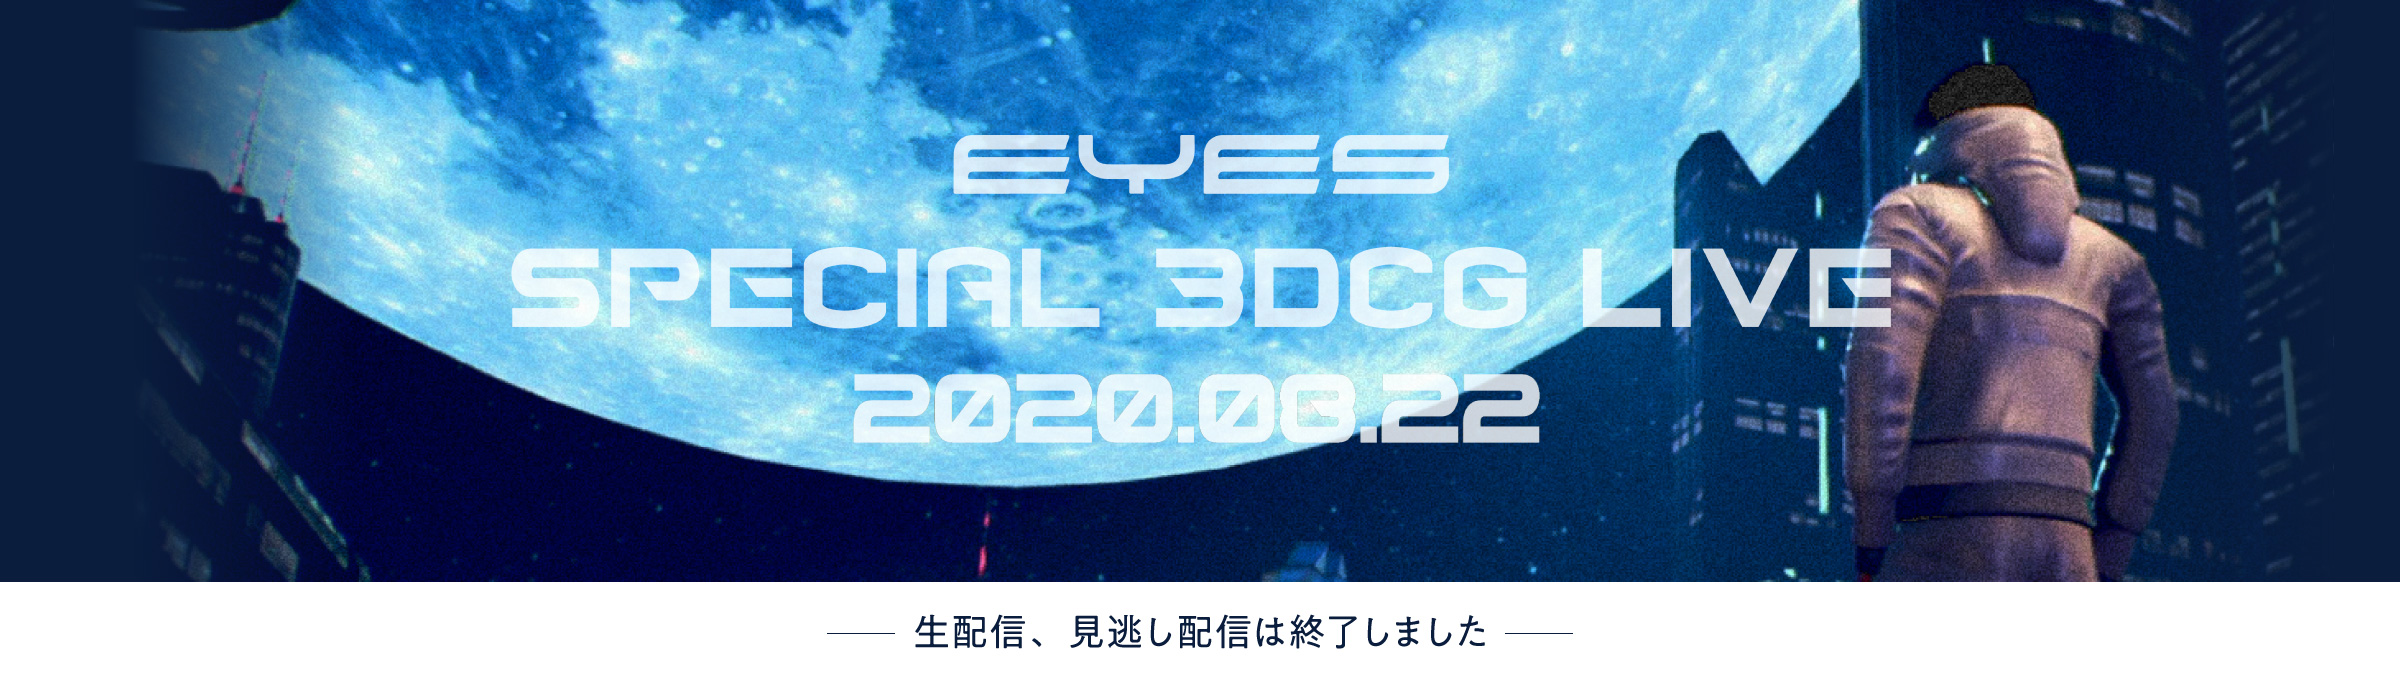 WONK 「EYES」 SPECIAL 3DCG LIVE